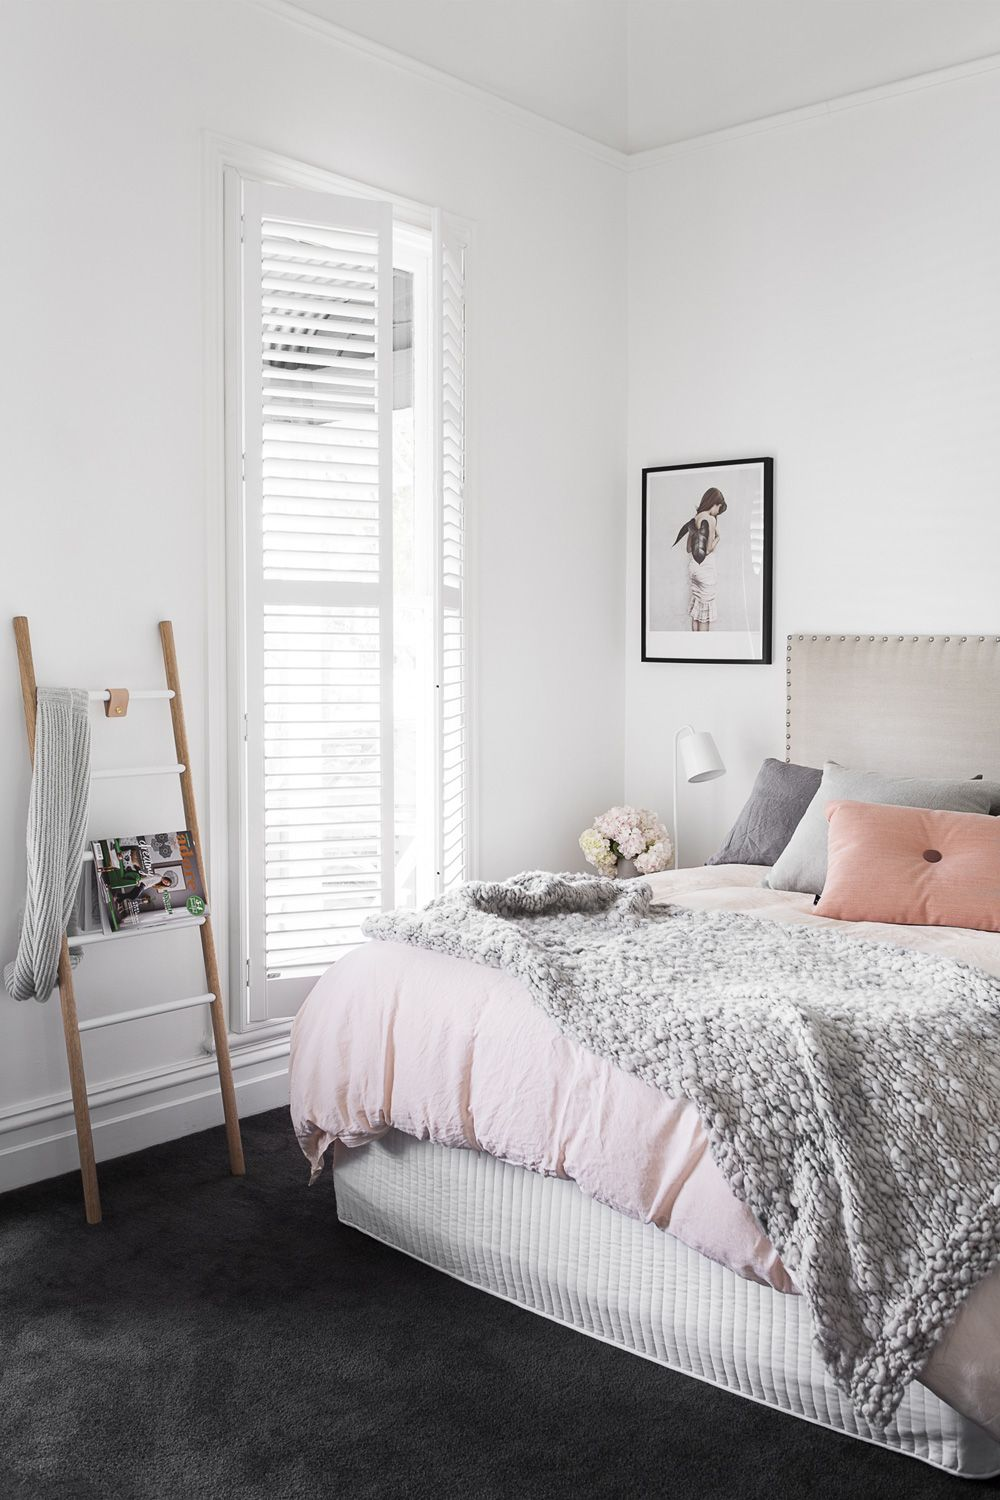 Stylist julia treuel of show pony interiors has applied cool tones and  classic aesthetic to create little slice hamptons magic in metro melbourne also rh pinterest